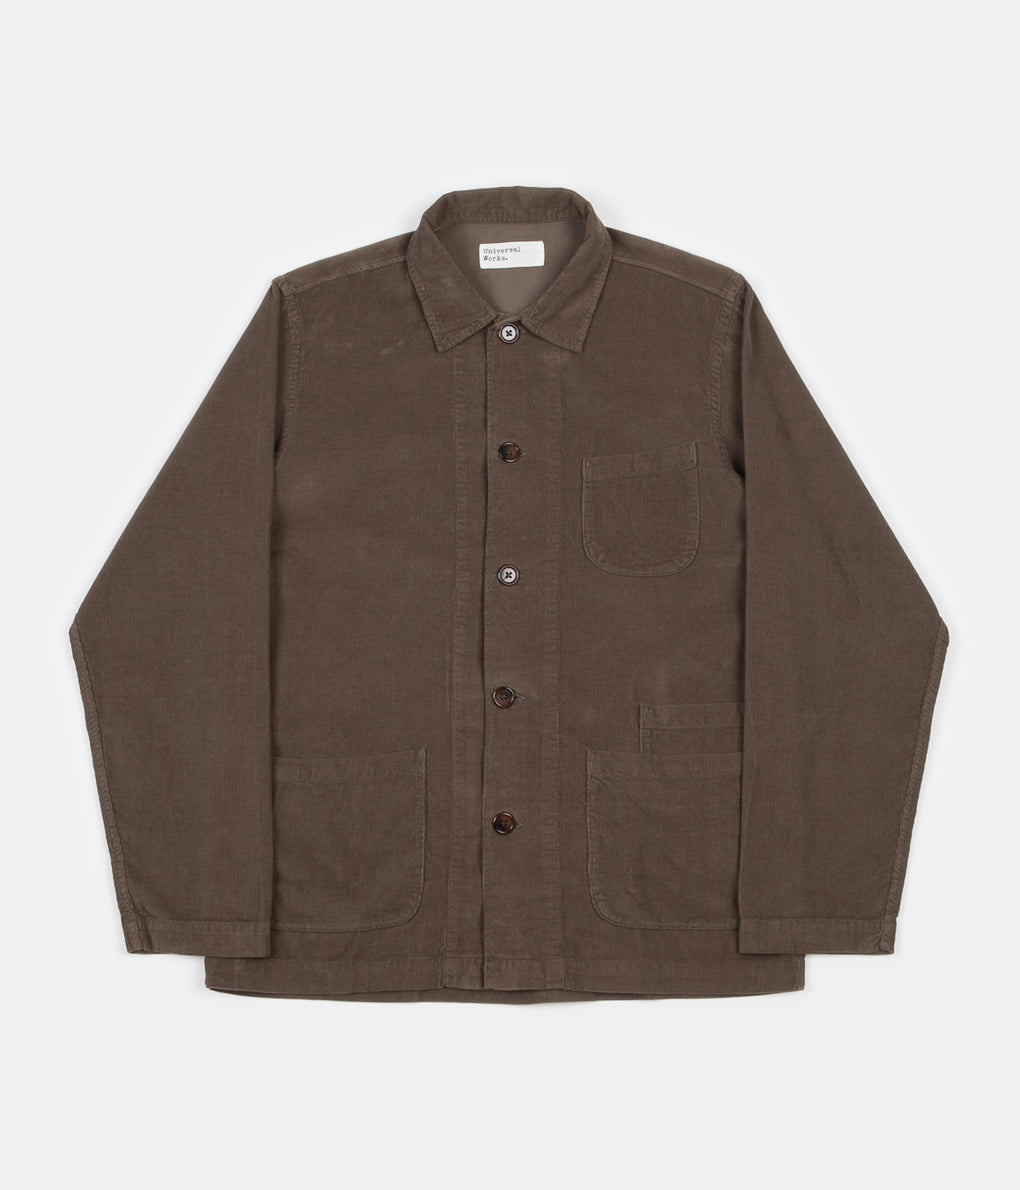 Universal Works Cord Bakers Overshirt - Olive